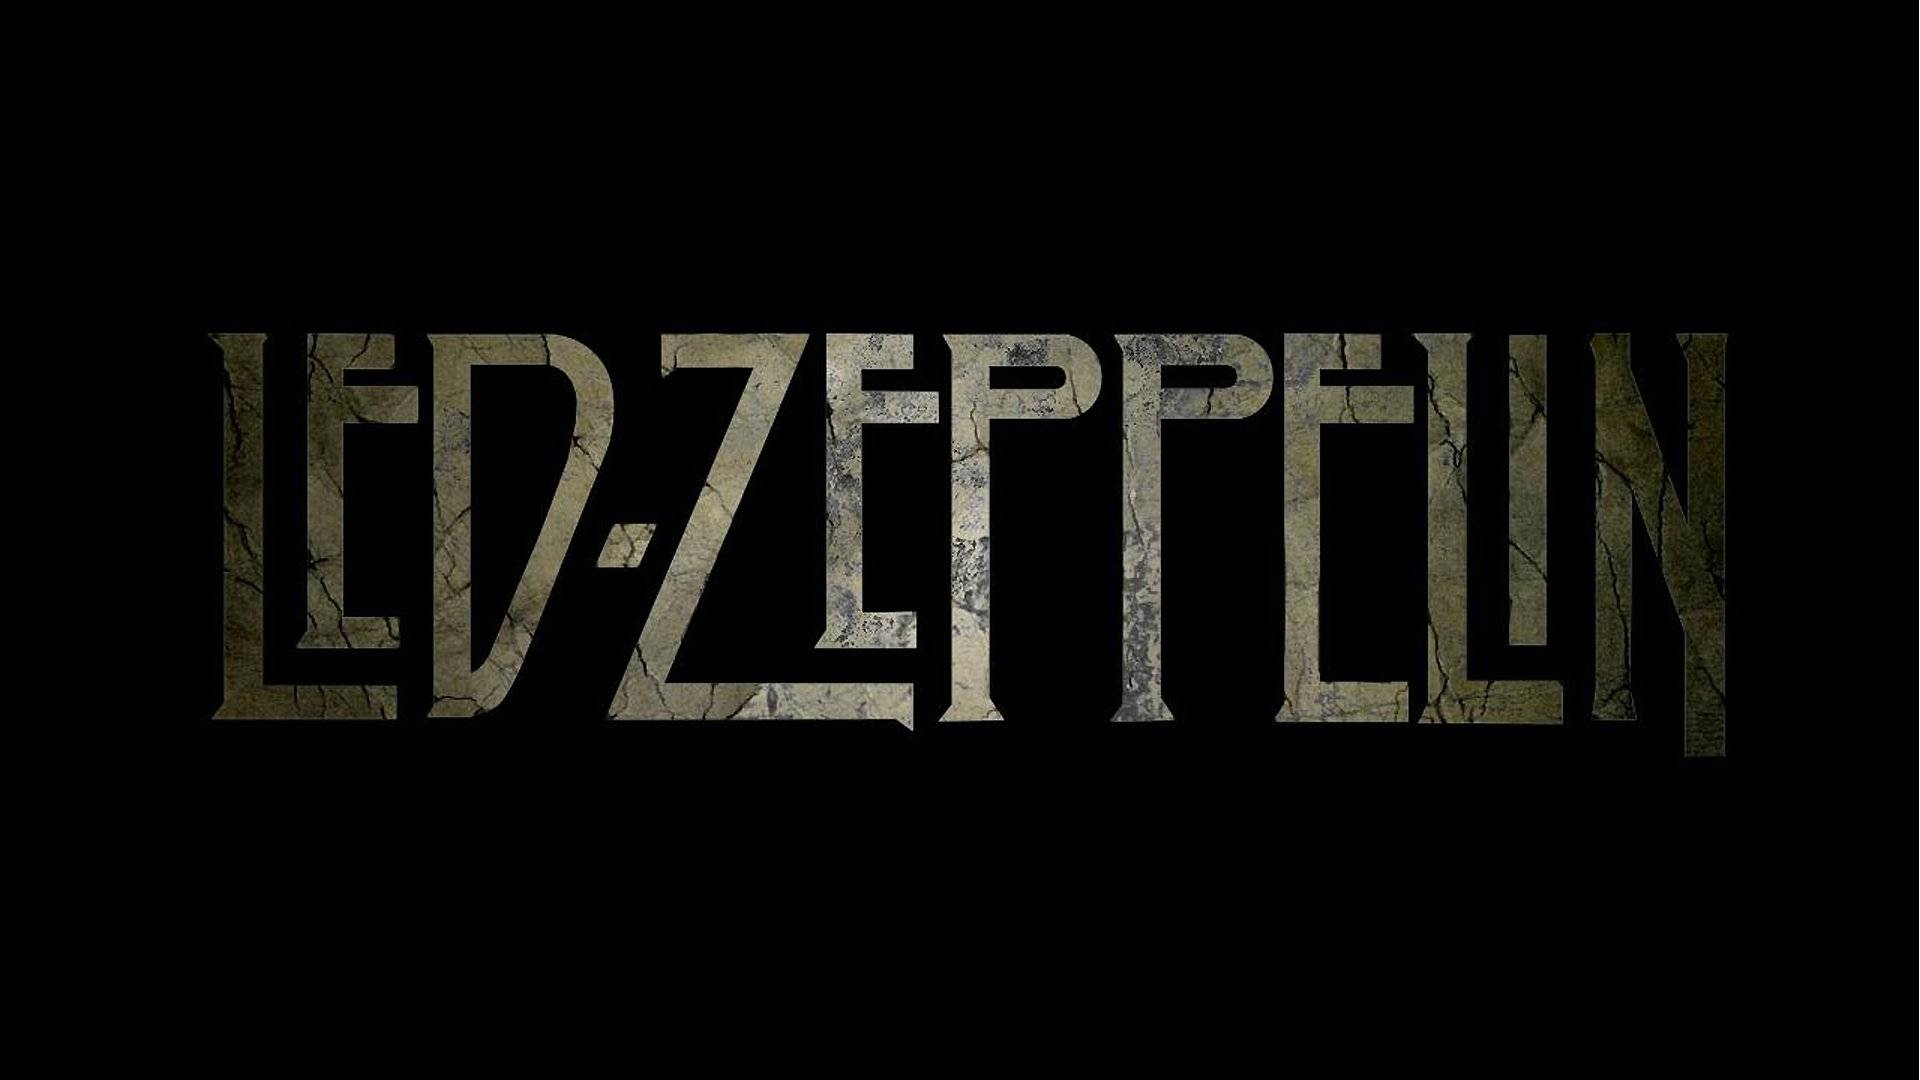 48 Led Zeppelin Hd Wallpapers | Backgrounds – Wallpaper Abyss Intended For Newest Led Zeppelin 3D Wall Art (Gallery 6 of 20)